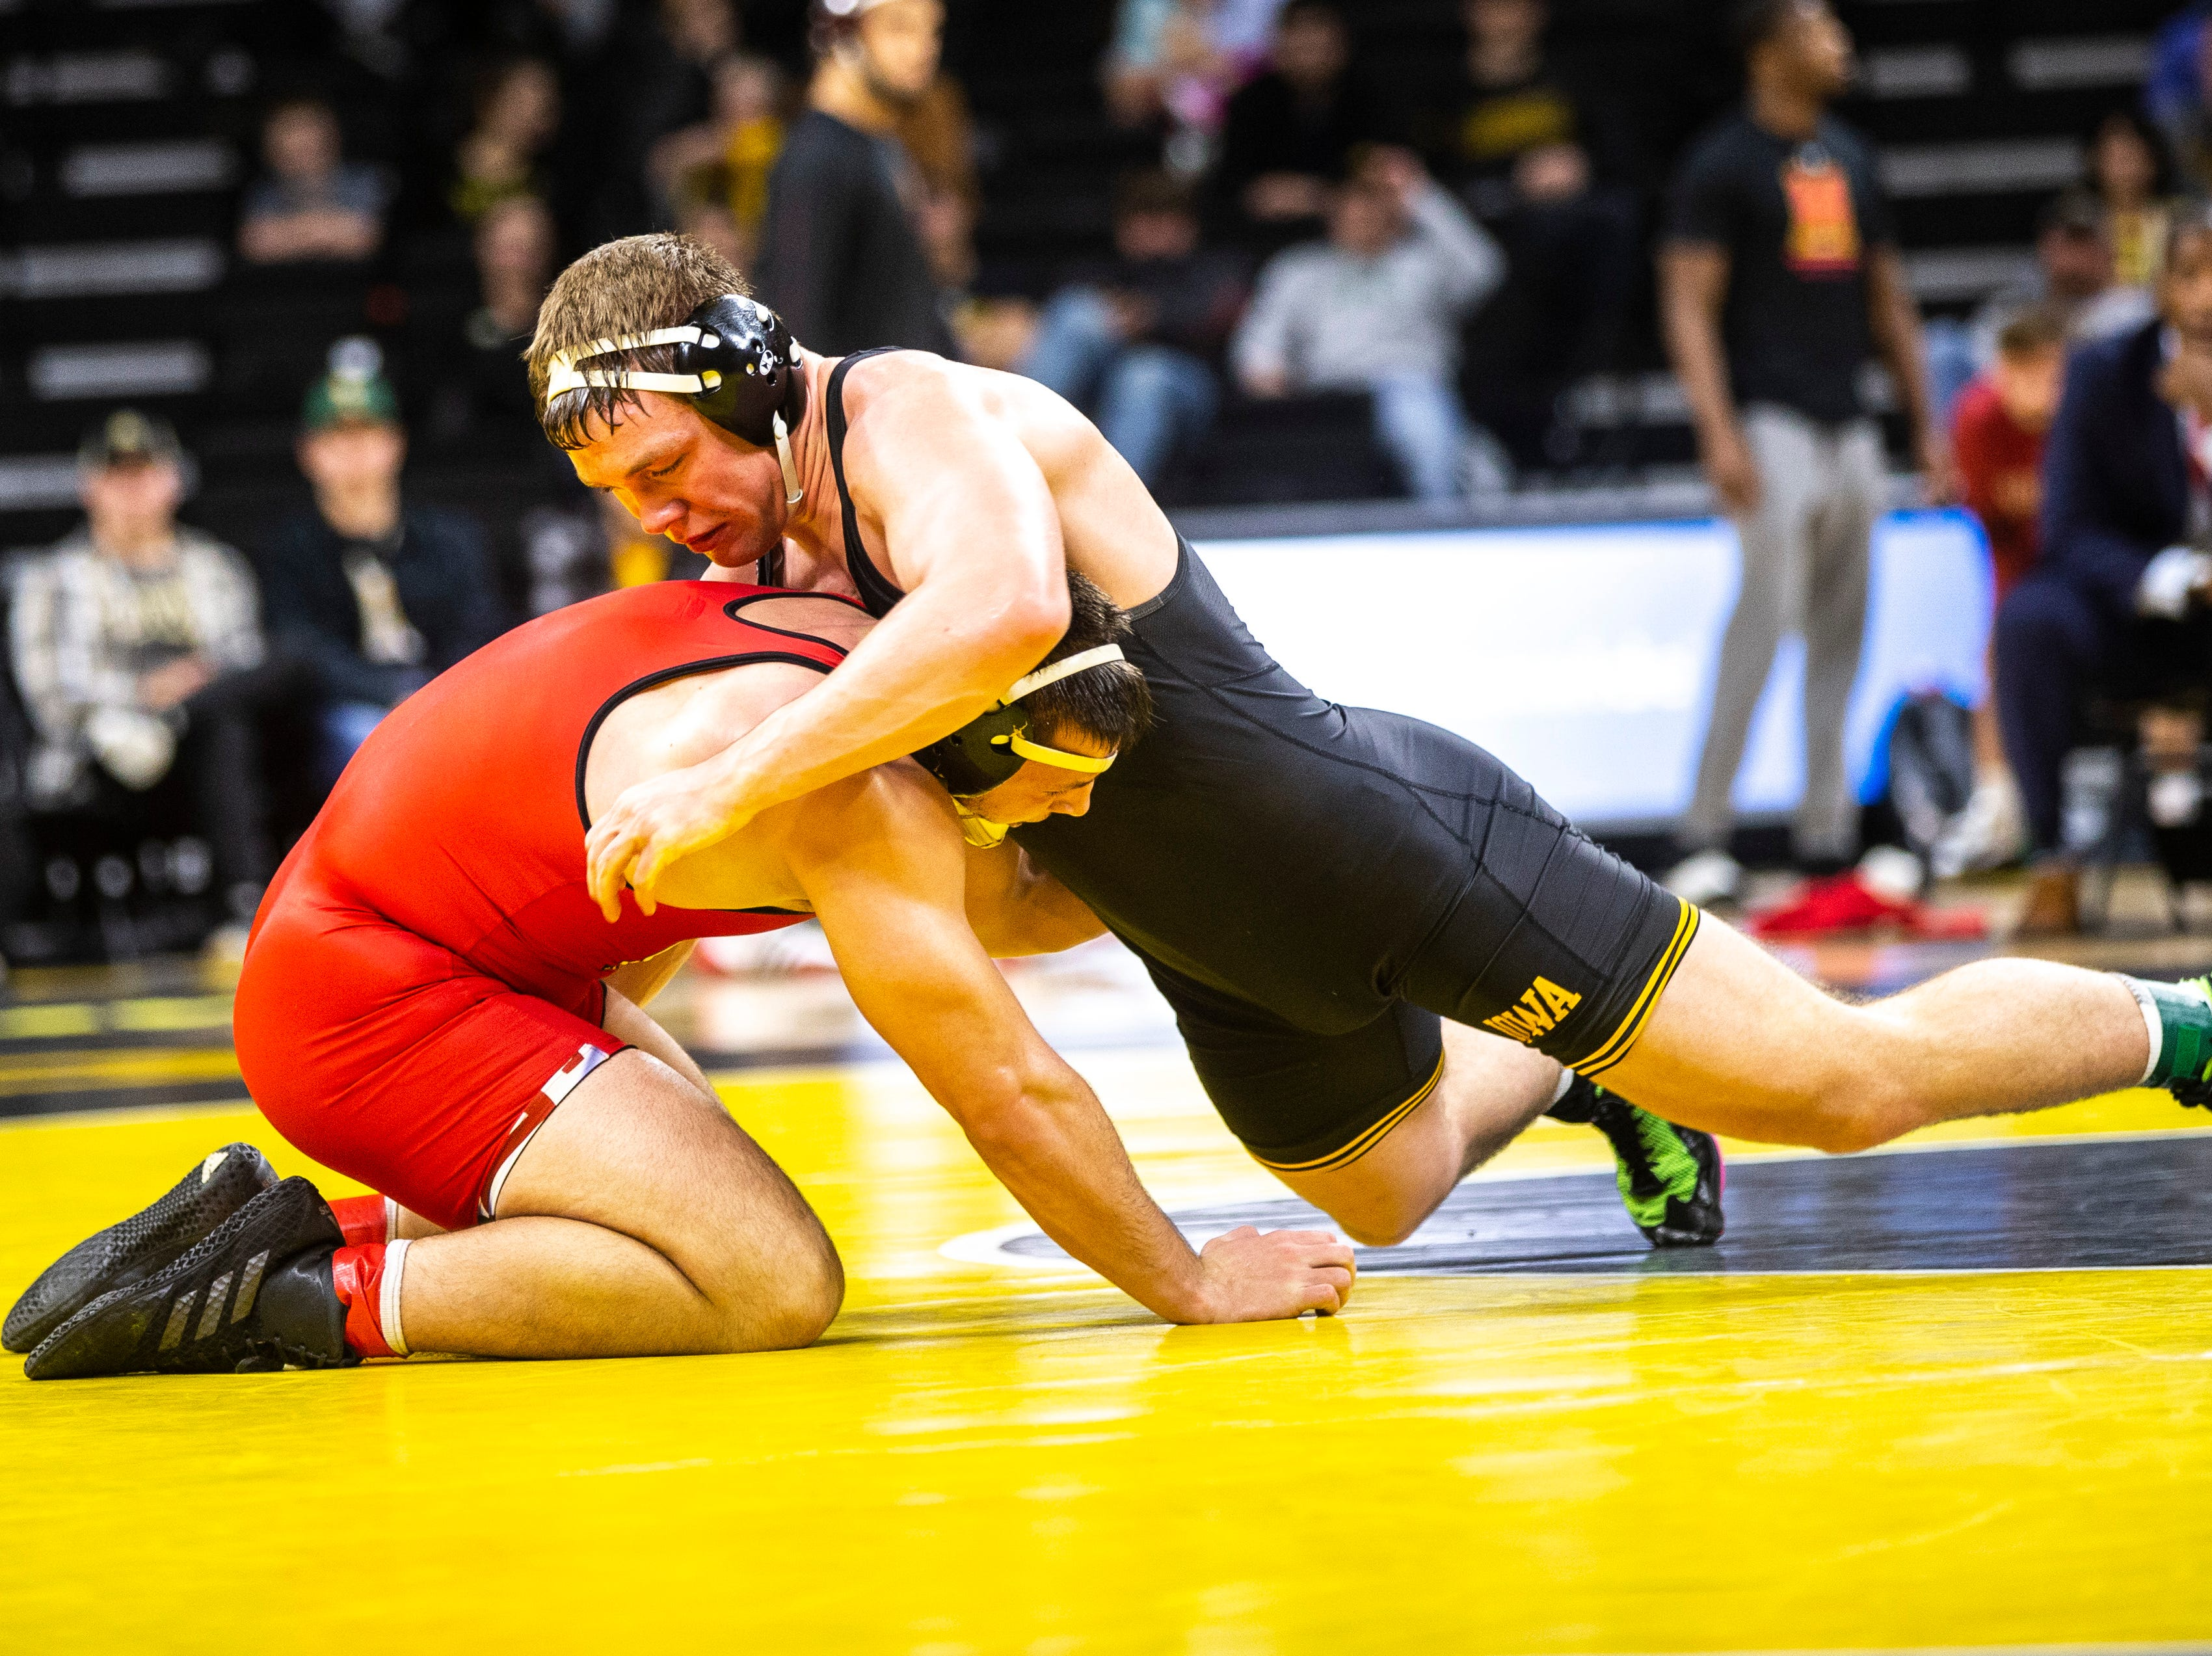 Iowa's Jacob Warner, right, wrestles Maryland's Niko Cappello at 197 during a NCAA Big Ten Conference wrestling dual on Friday, Feb. 8, 2019 at Carver-Hawkeye Arena in Iowa City, Iowa.